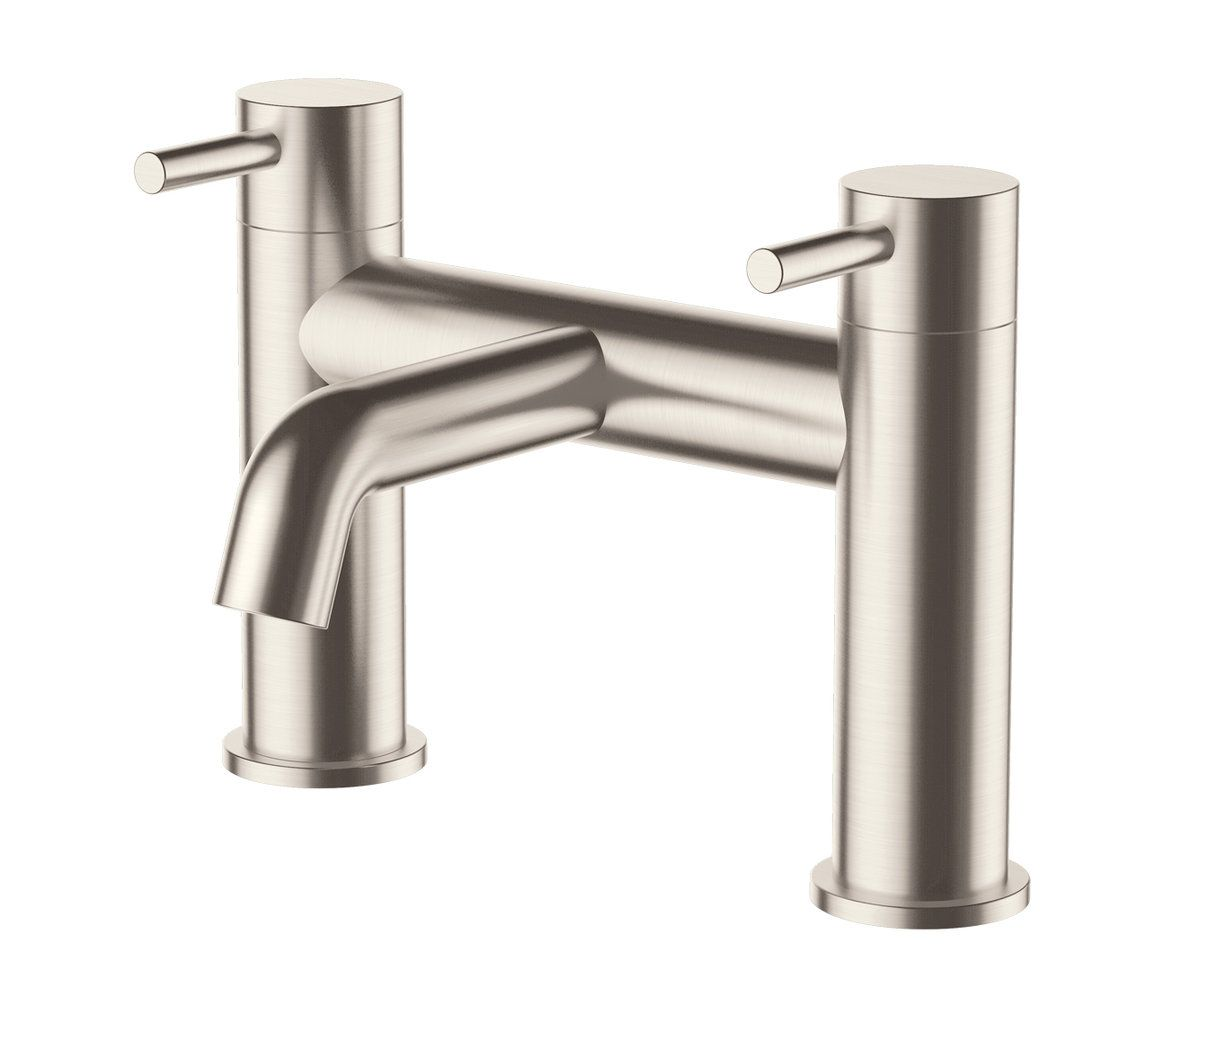 Inox Ix223 Brushed Stainless Steel Colour Bath Filler Tap Deck Steel Bath Brushed Stainless Steel Steel Deck